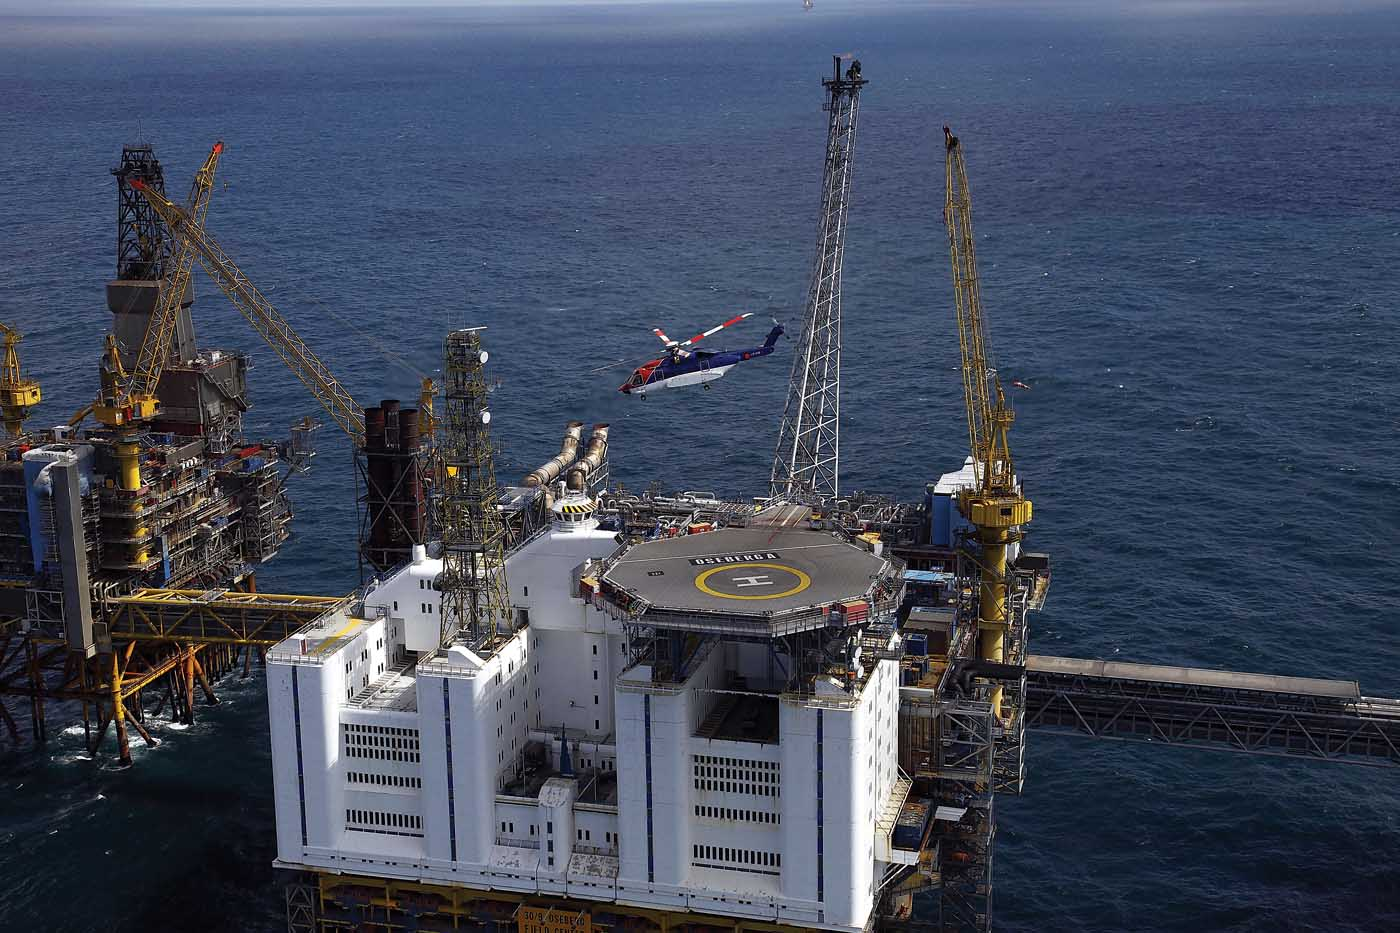 FDM has long since become a contract requirement for offshore oil-and-gas operators, but few customers outside of the offshore sector are aware of or interested in FDM. CHC Photo